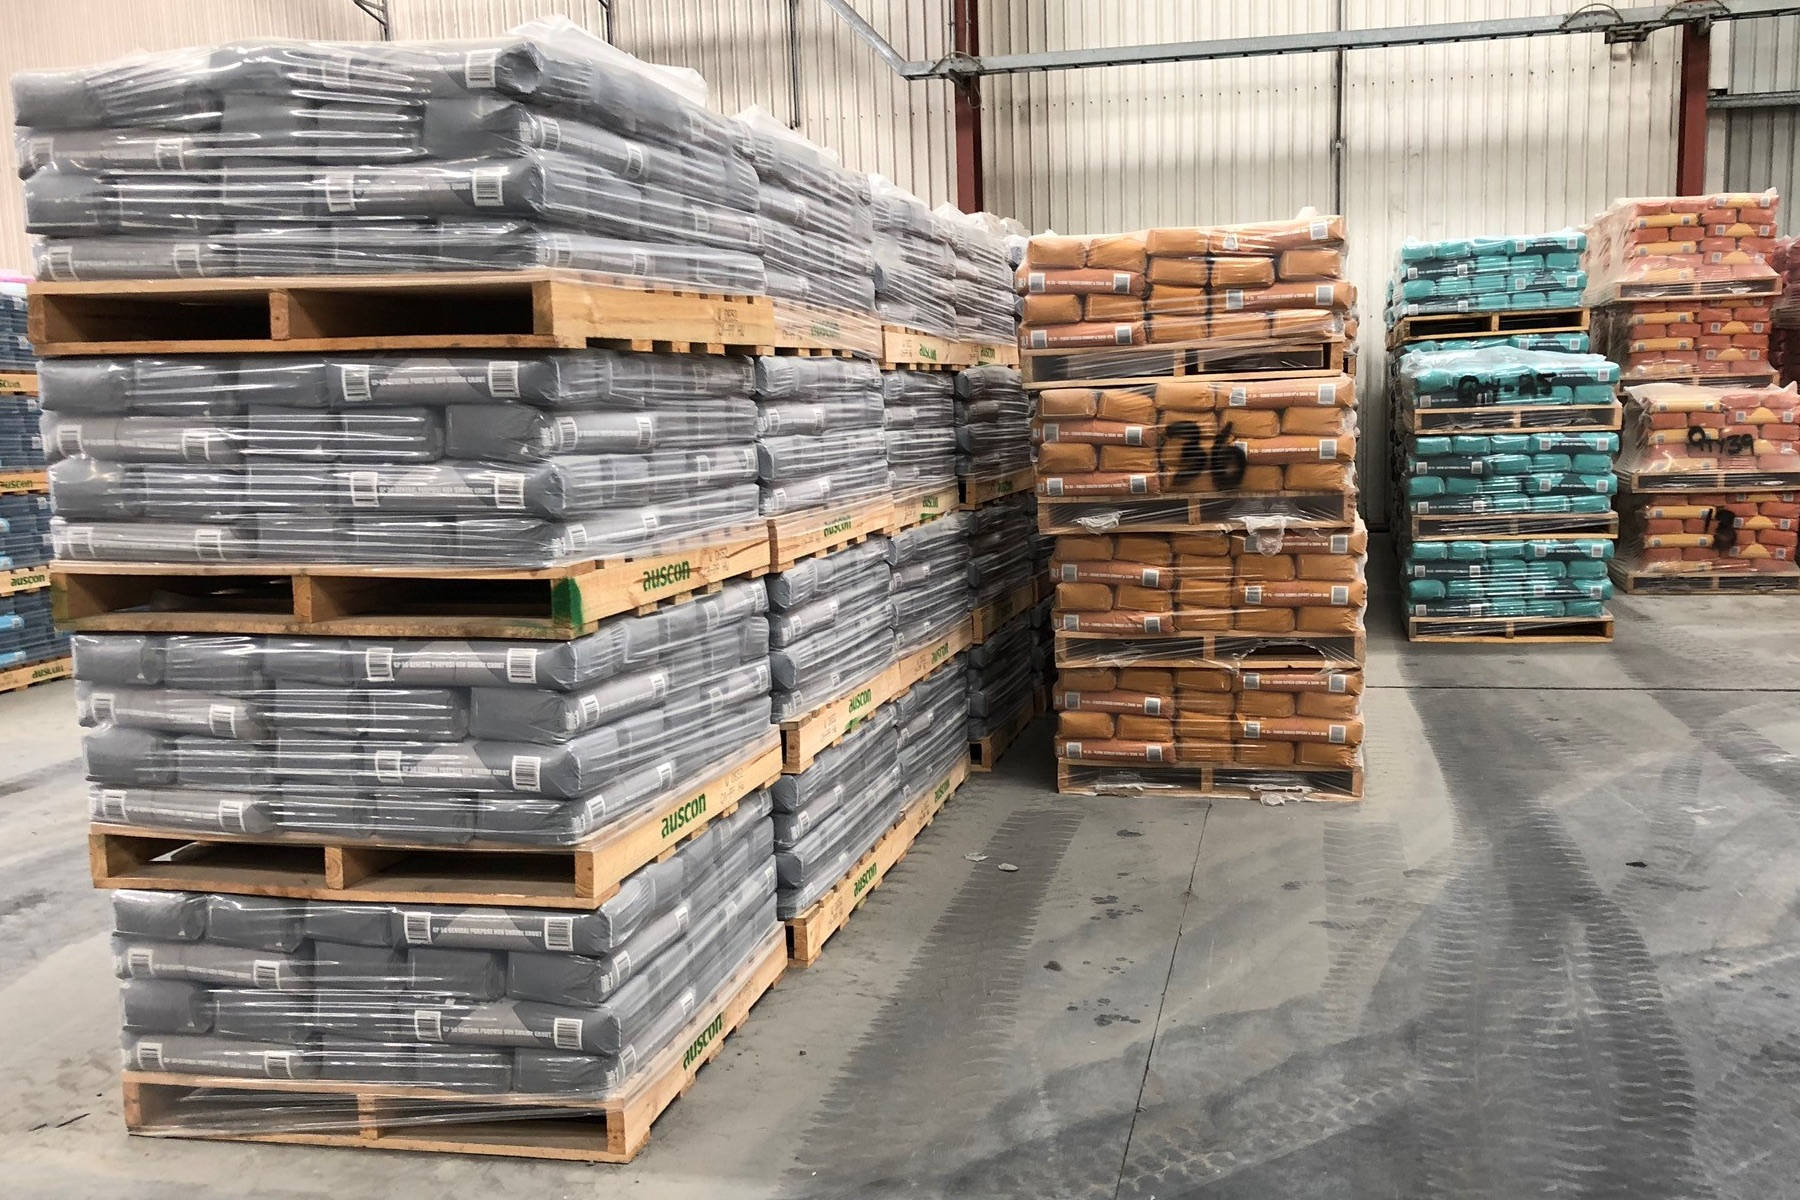 Auscon Australia made cement sitting on pallets in warehouse